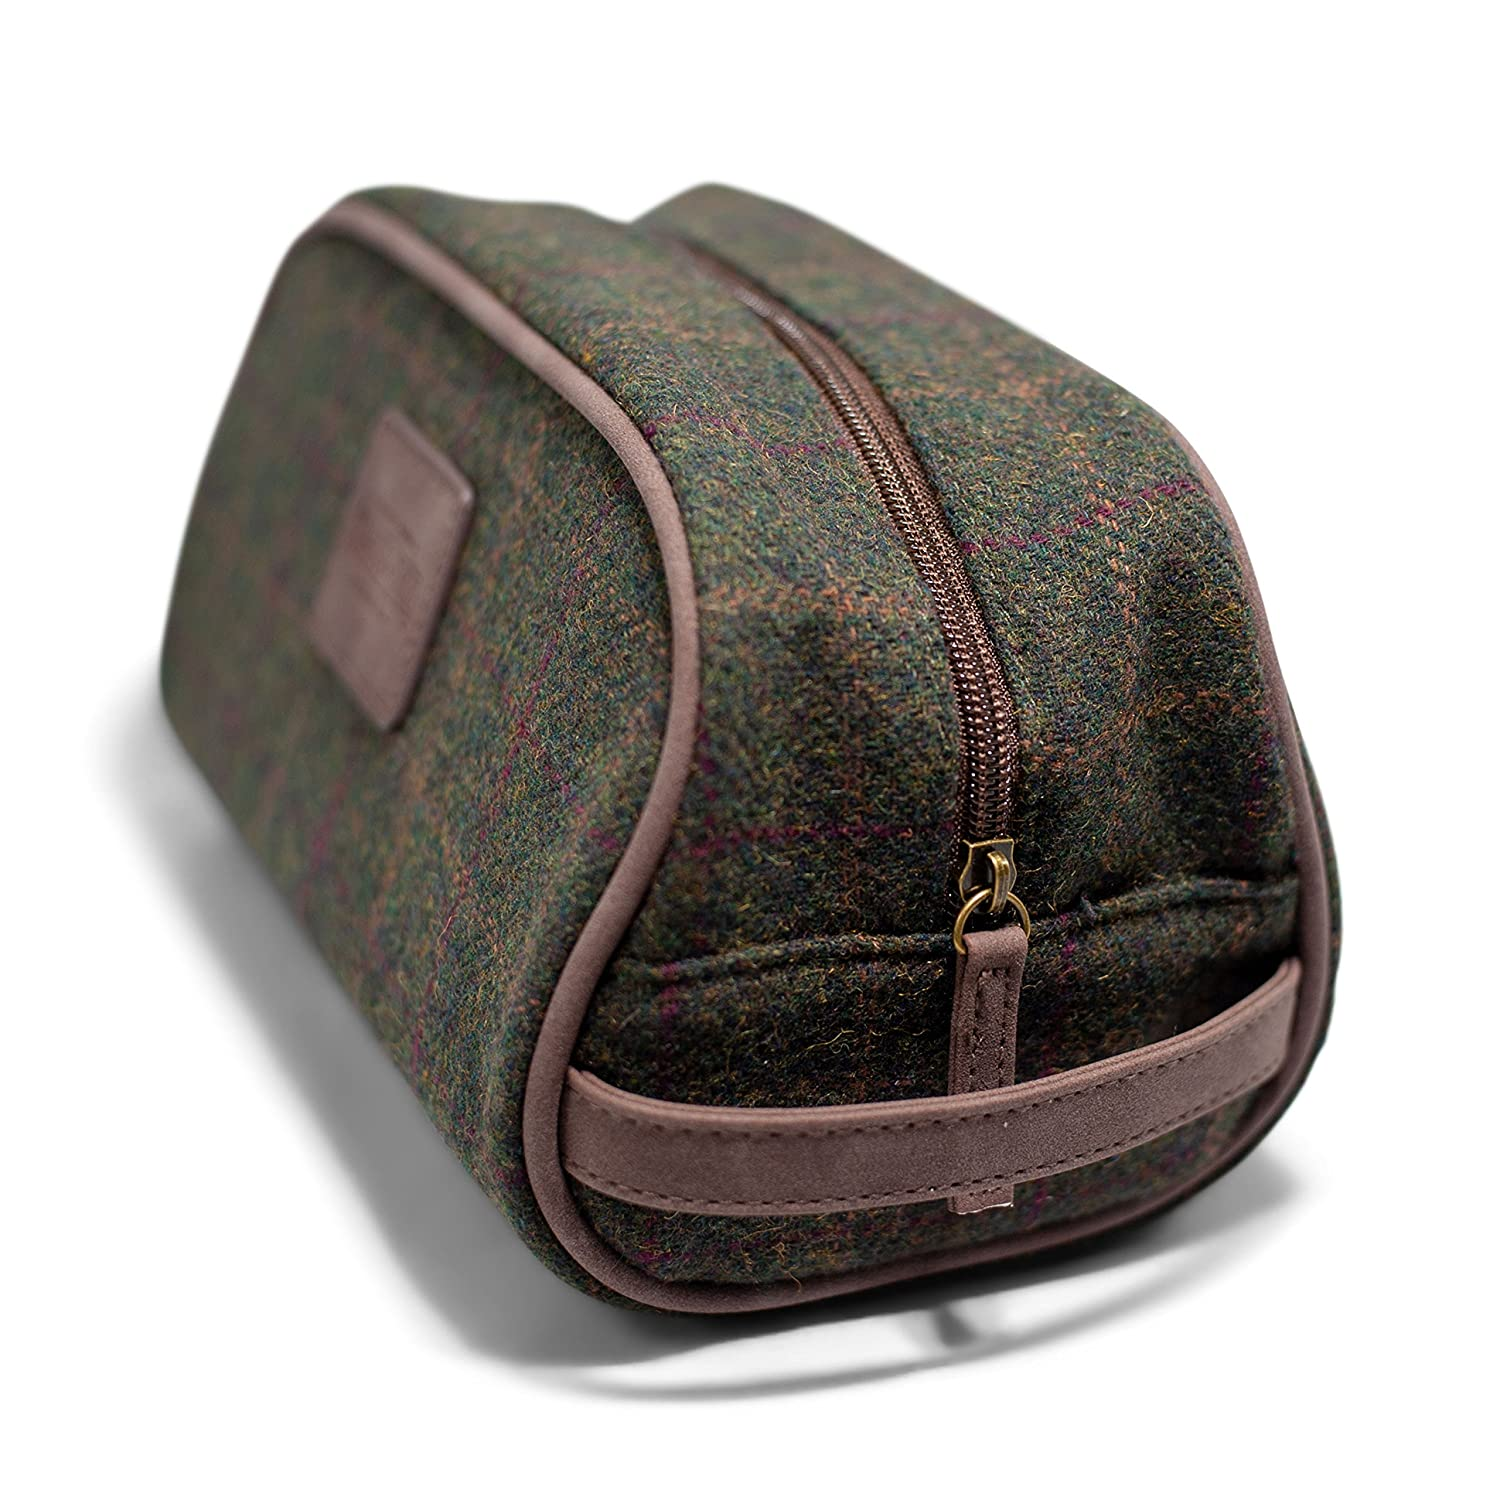 Luxury Toiletry Organizer Bag – Dopp Kit for Travel, Bathroom, Shower, and Shaving – Vintage Gentleman Plaid Exterior with Waterproof Interior – Extra Interior Zippered Pocket for More Storage